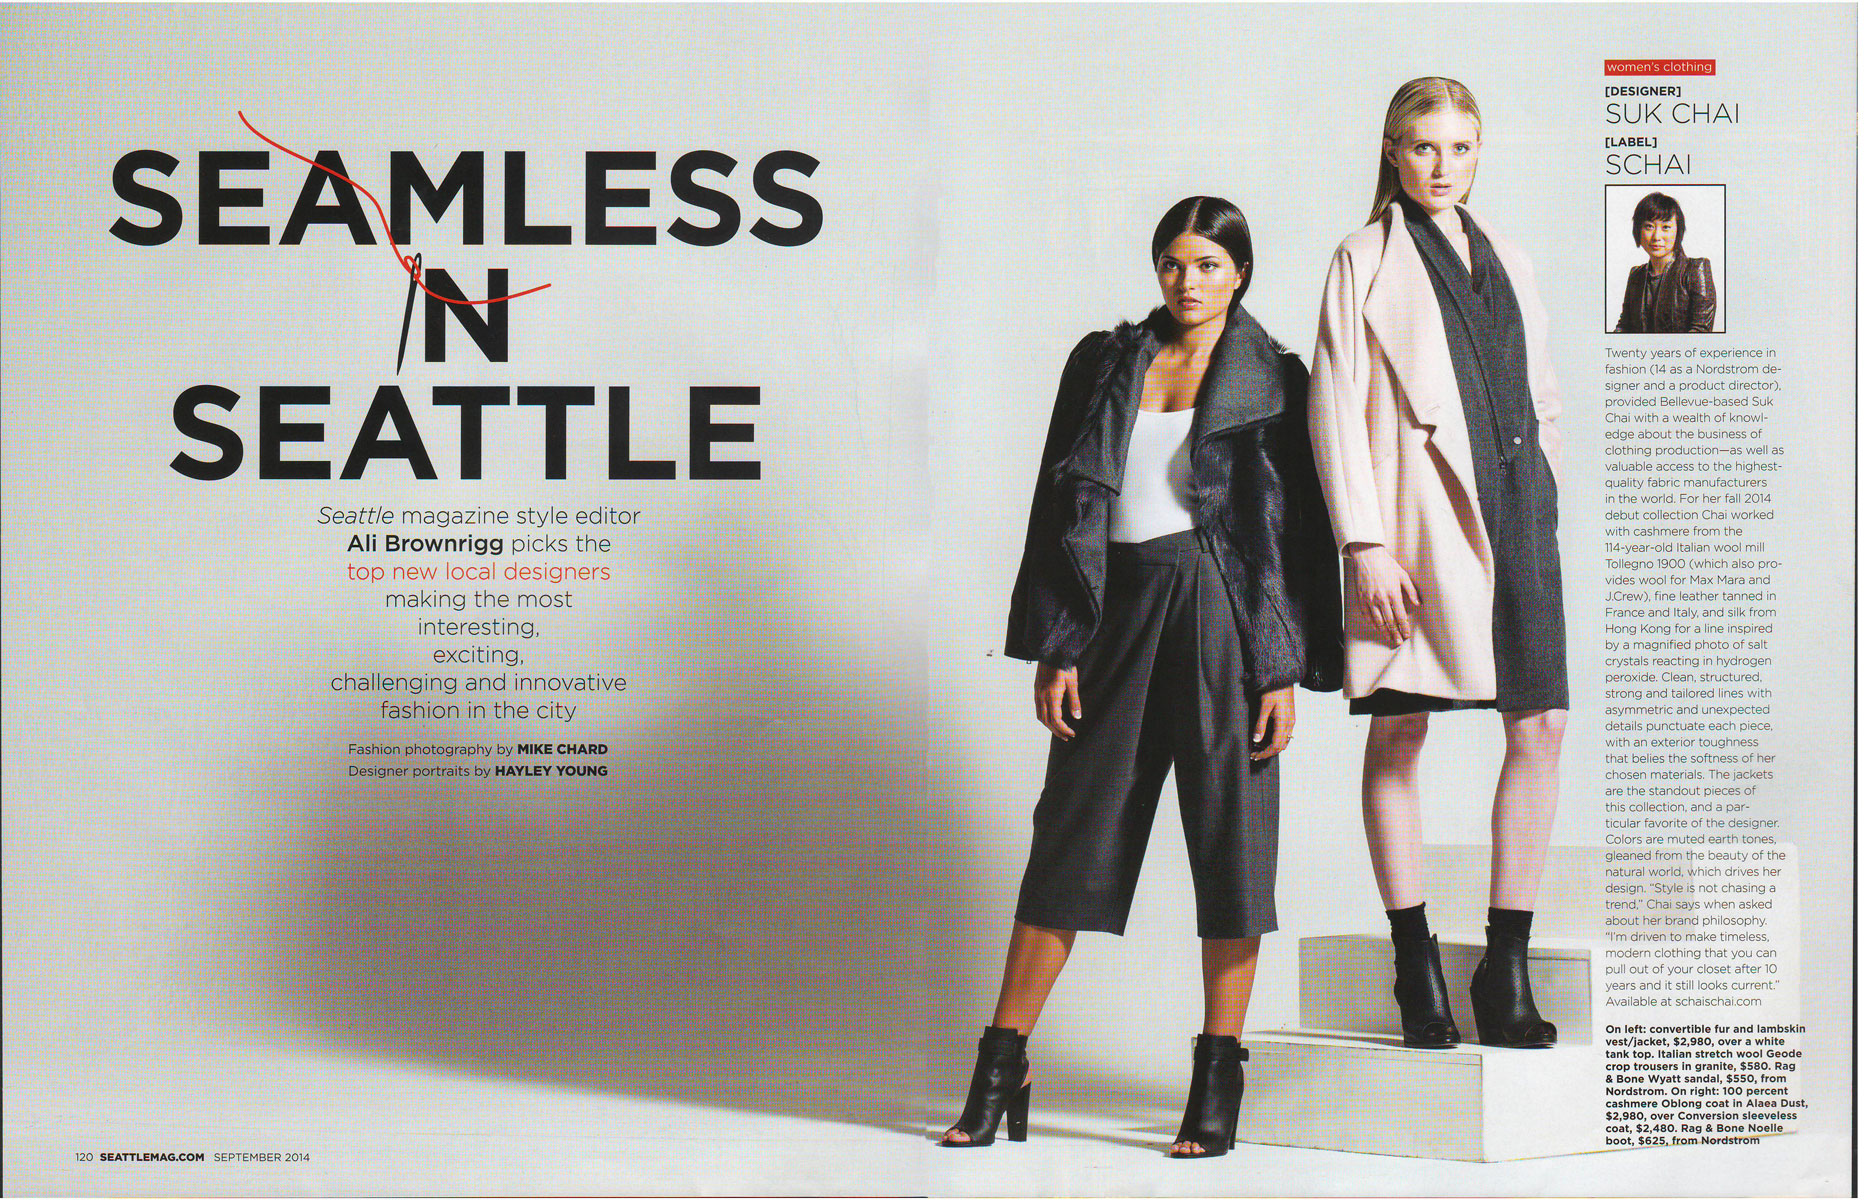 Seattle Fashion Model - Seattle Magazine - Seamless in Seattle editorial - Hannah Larson, The Healthful Model